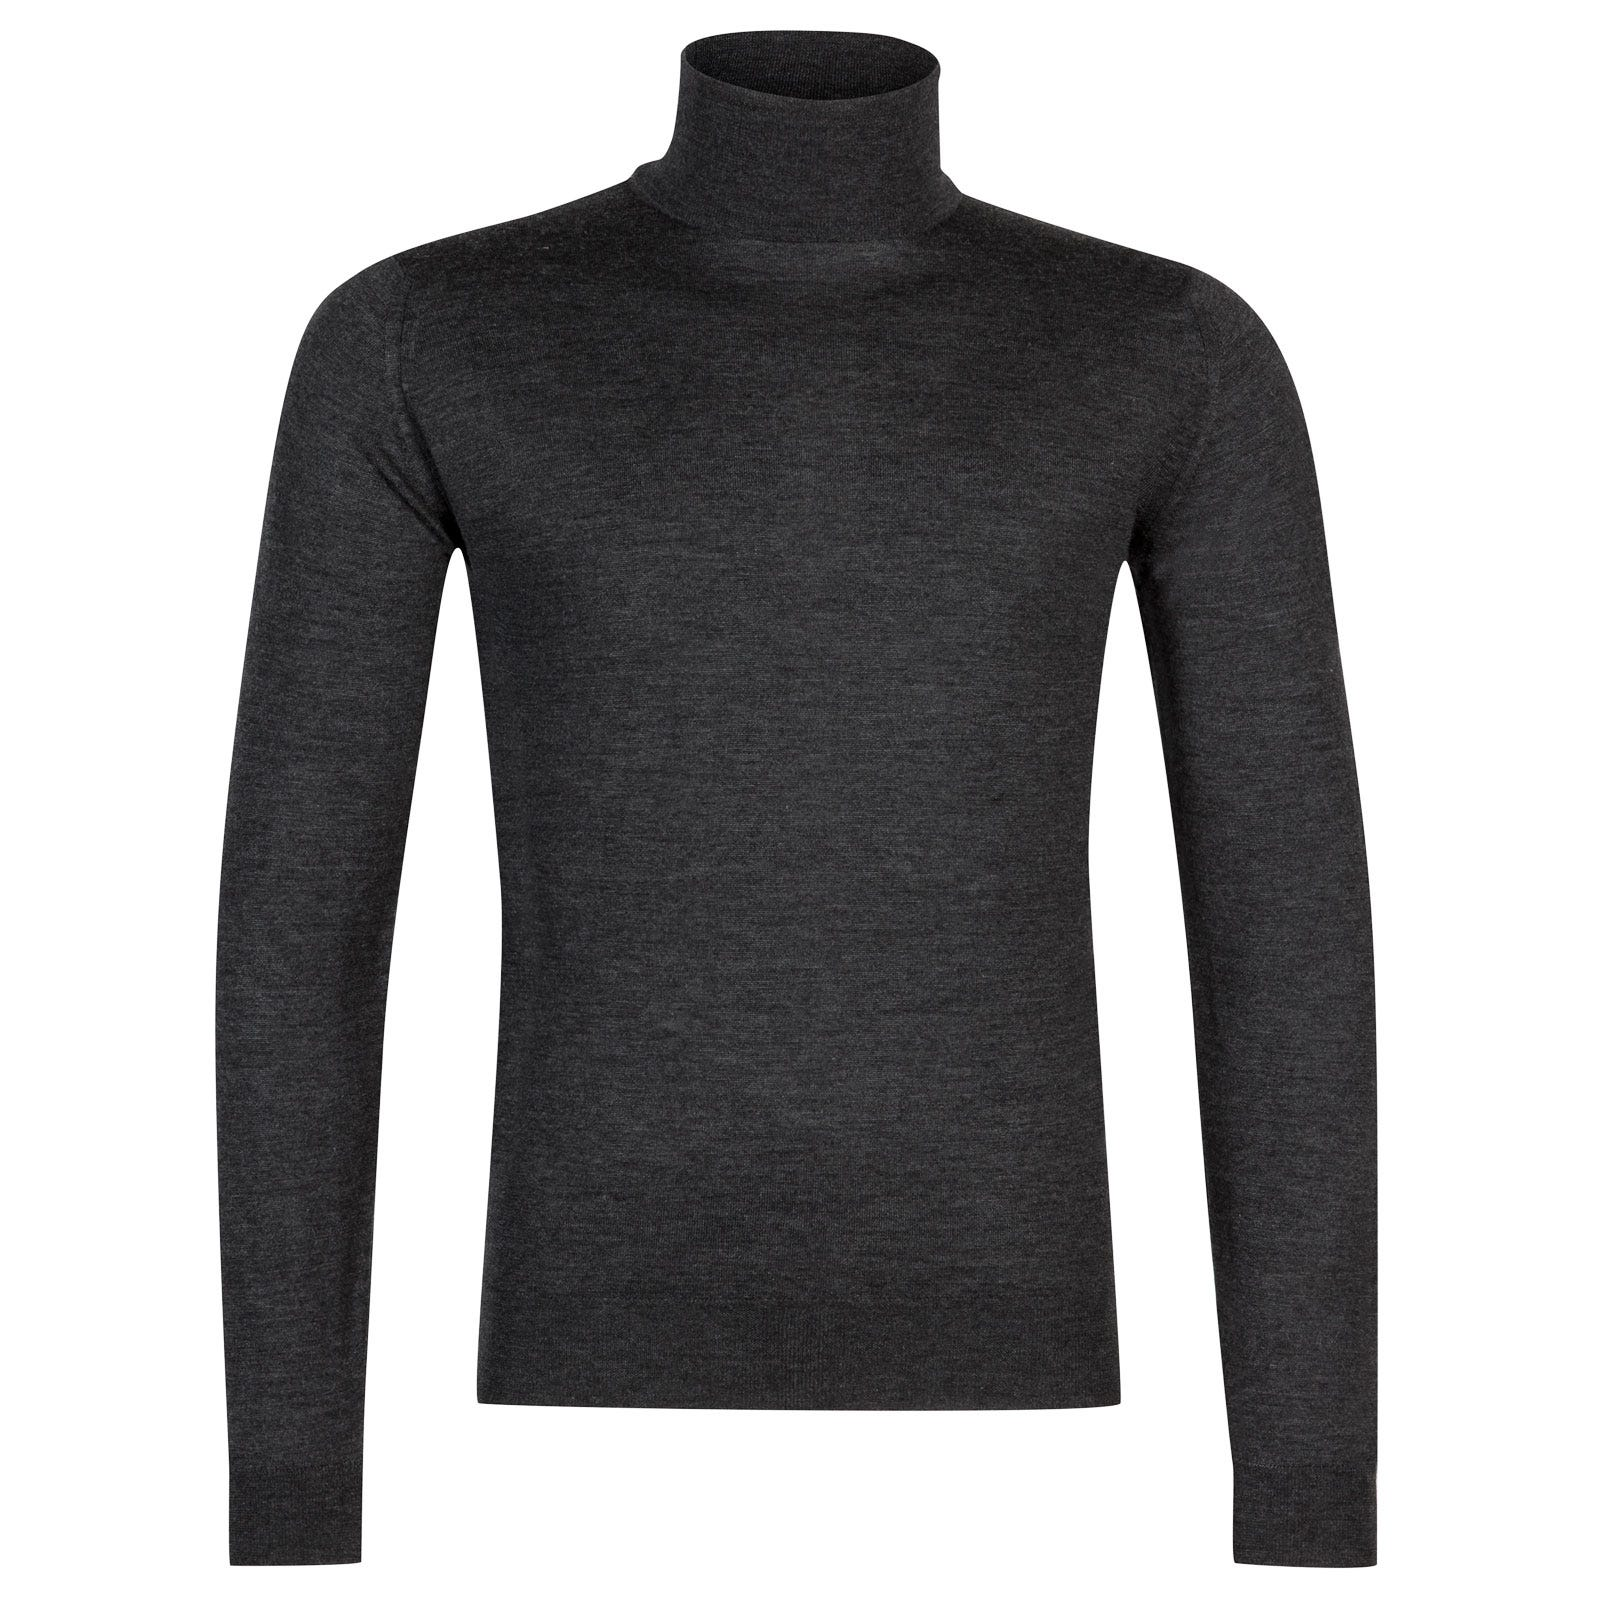 John Smedley arlington Merino Wool and Cashmere Pullover in Charcoal-S